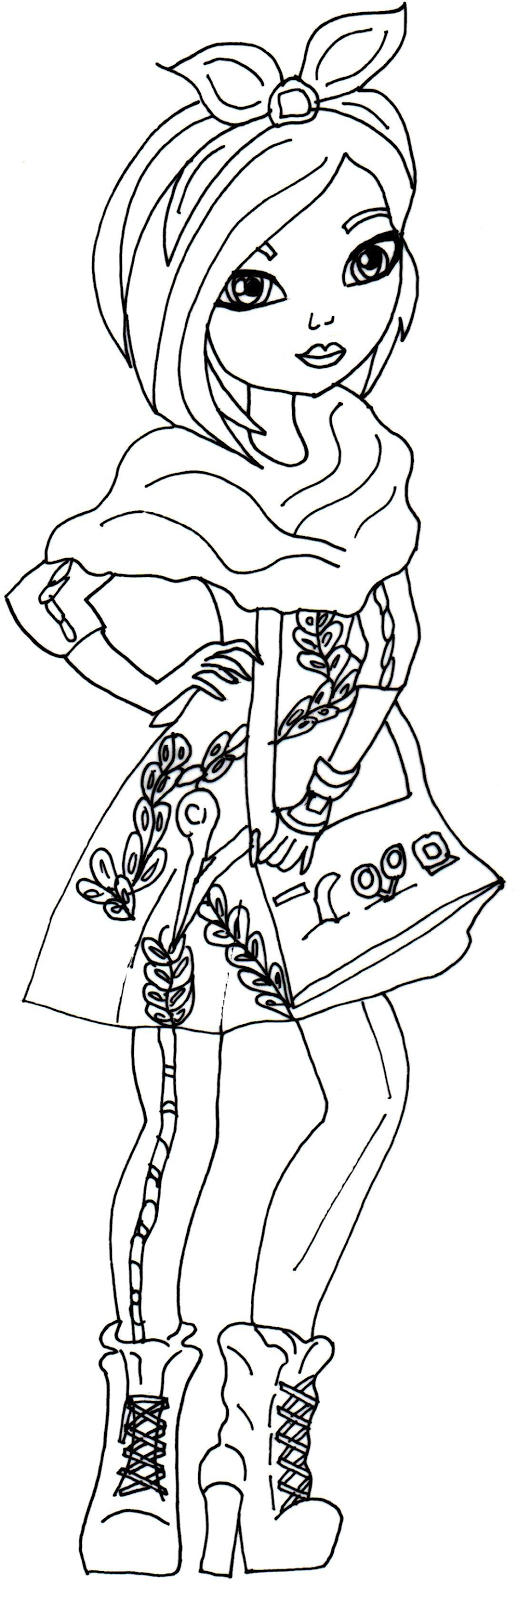 Coloring Pages for Girls Ever after High Download Kids Breathtaking to Print Of Monster High Baby Coloring Pages 012 to Coloring Pages Collection